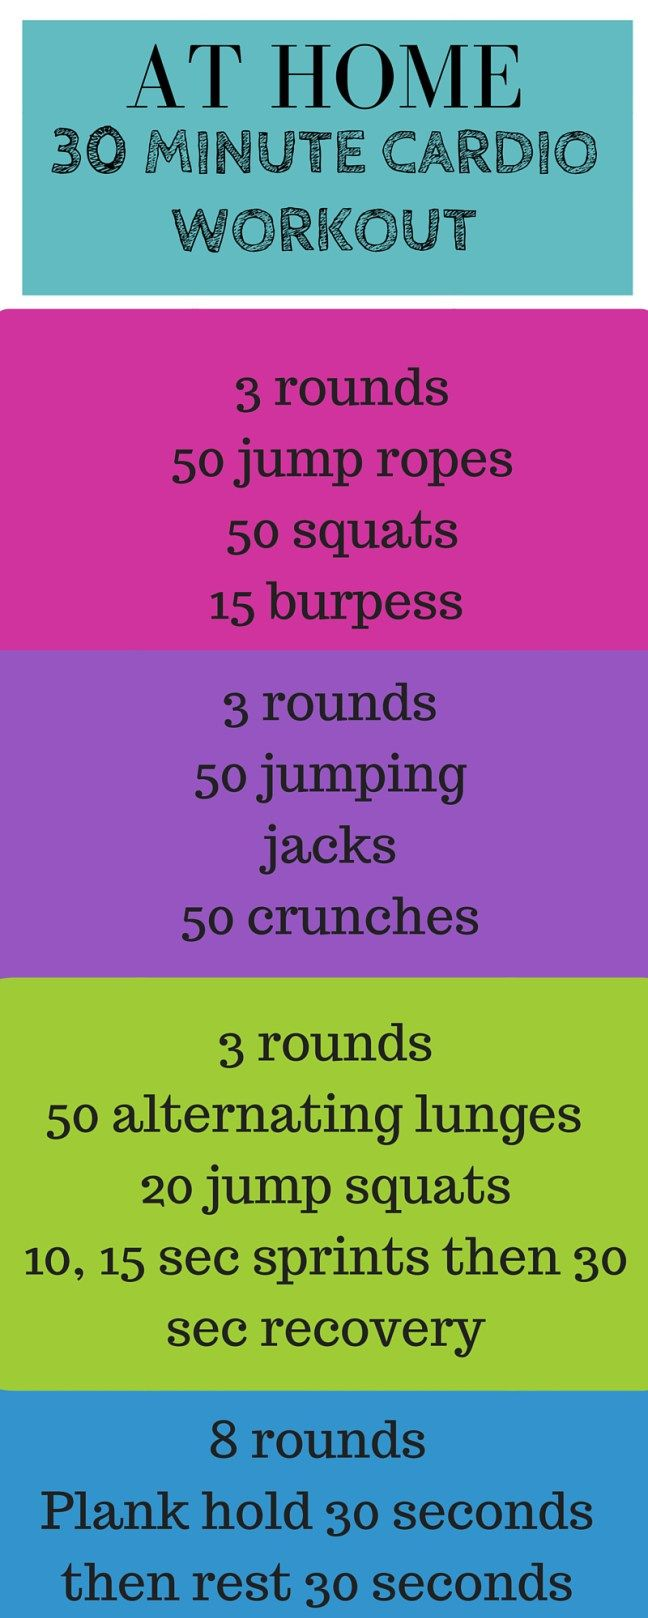 At home 30 minute cardio workout